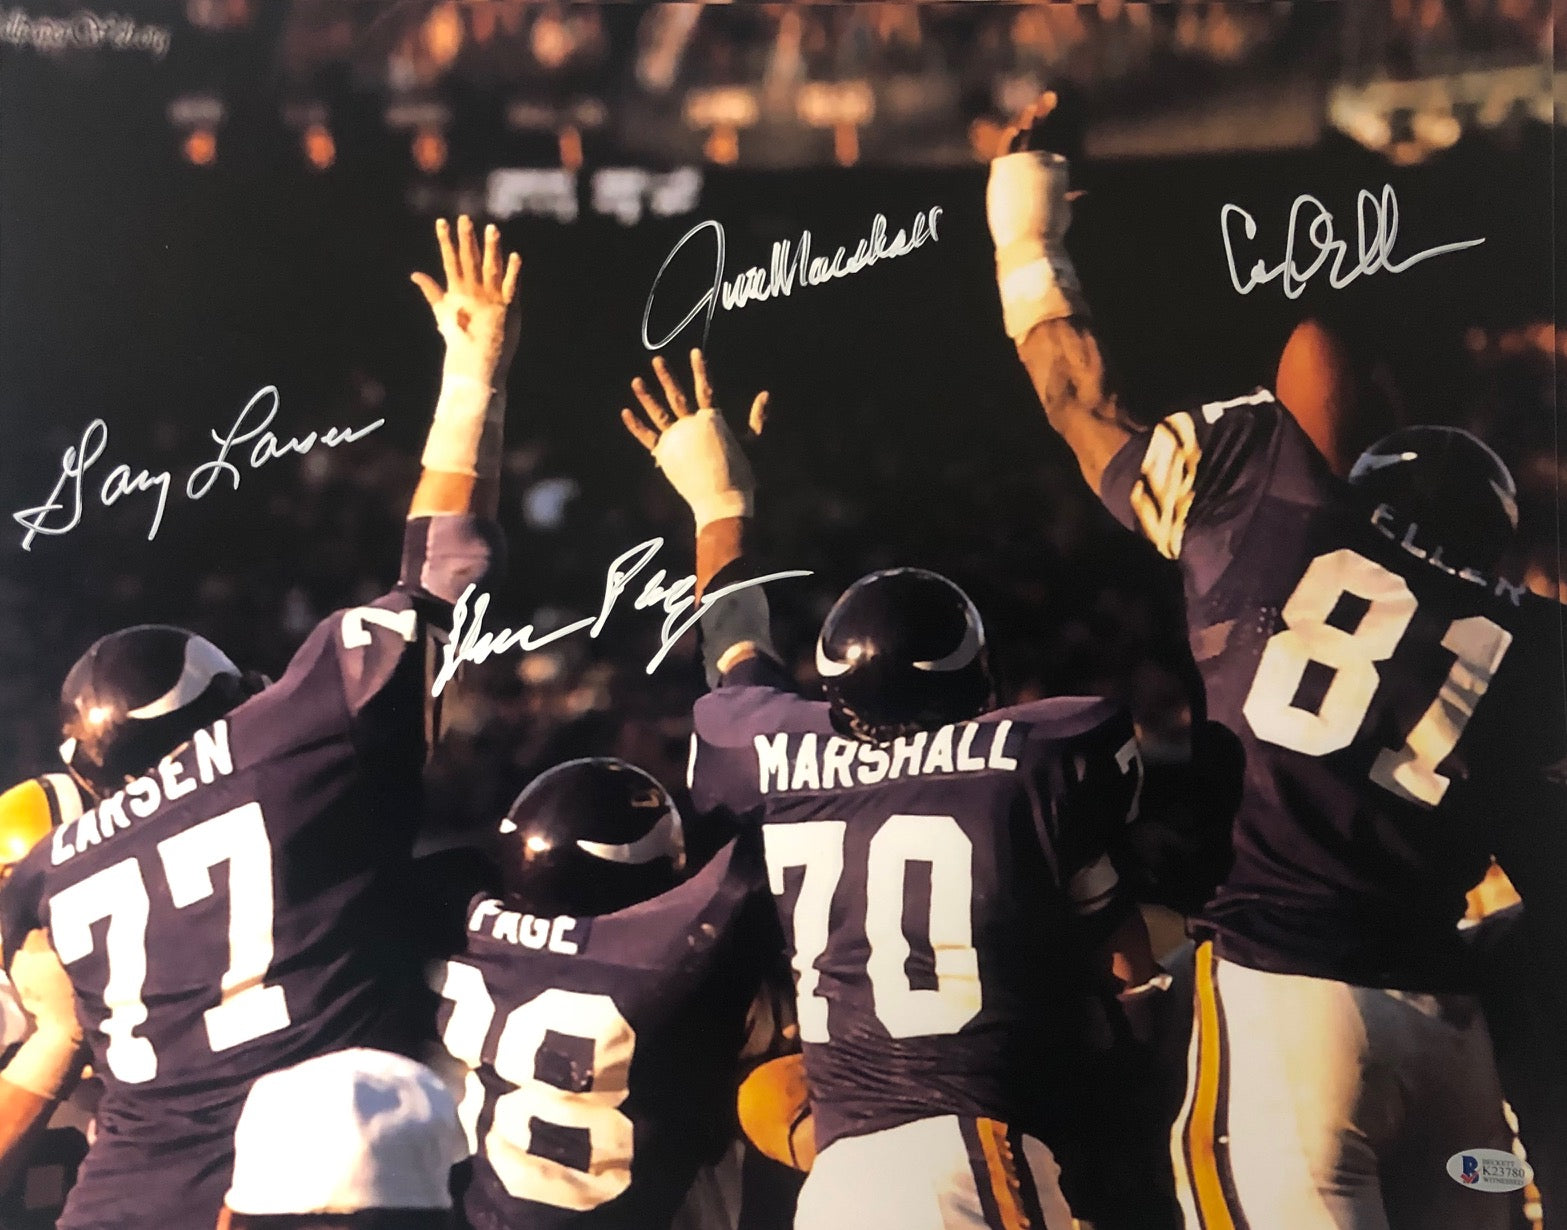 Purple People Eaters Signed Purple Backs 16 x 20 Photo - Signed by Page, Eller, Marshall, and Larsen